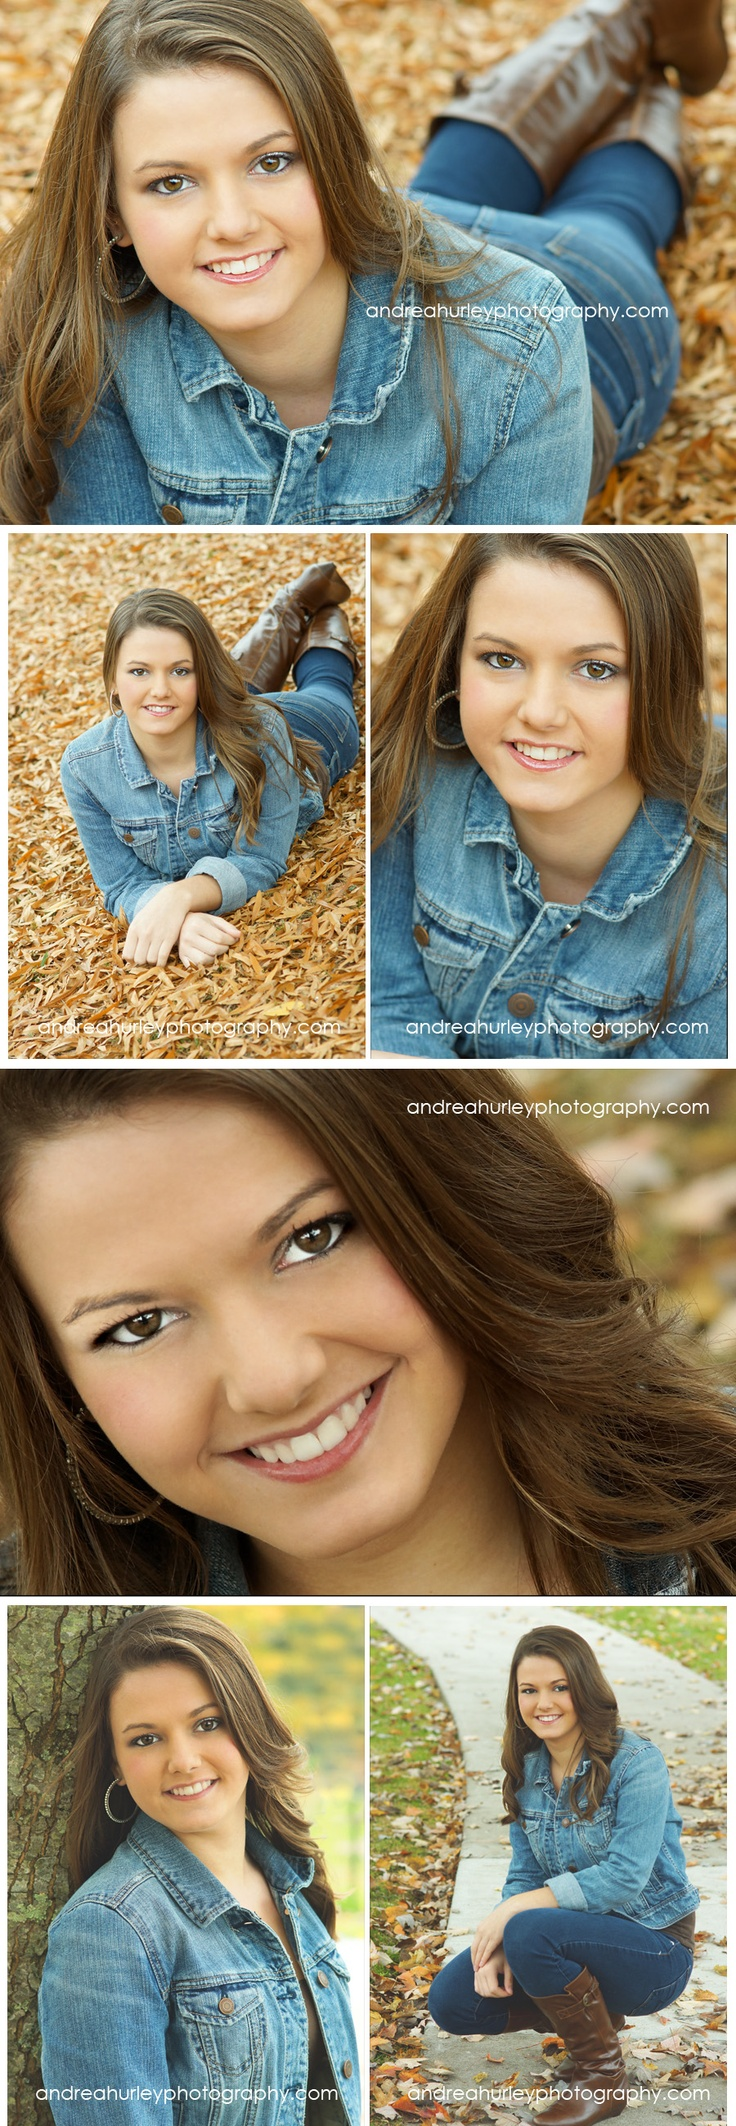 Senior Posing ~ Eastern Kentucky Senior Photography   andreahurleyphotography.com